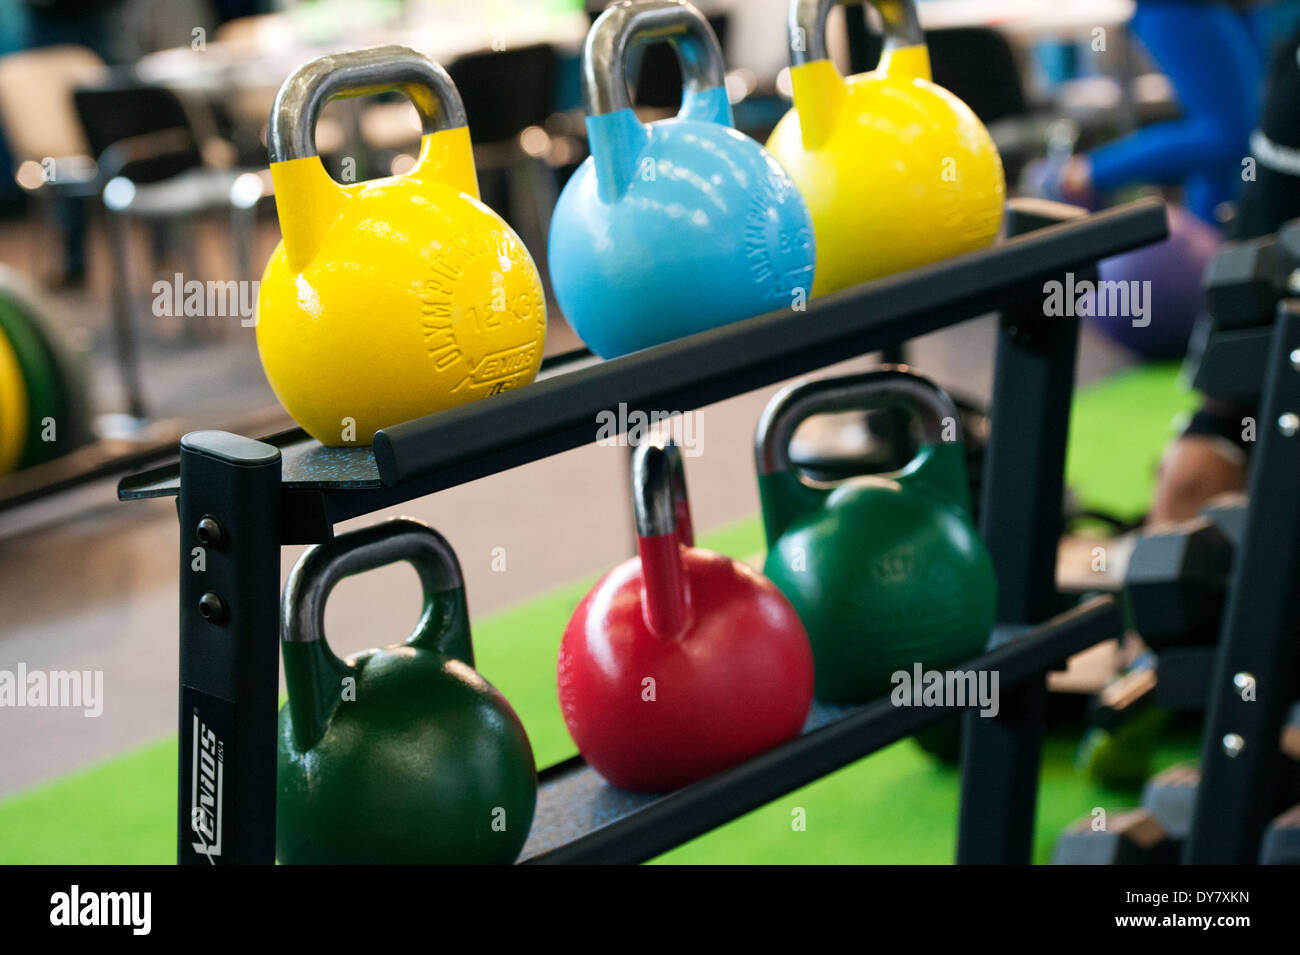 Coloured weights on the fitness fair FIBO in Cologne, Germany. - Stock Image